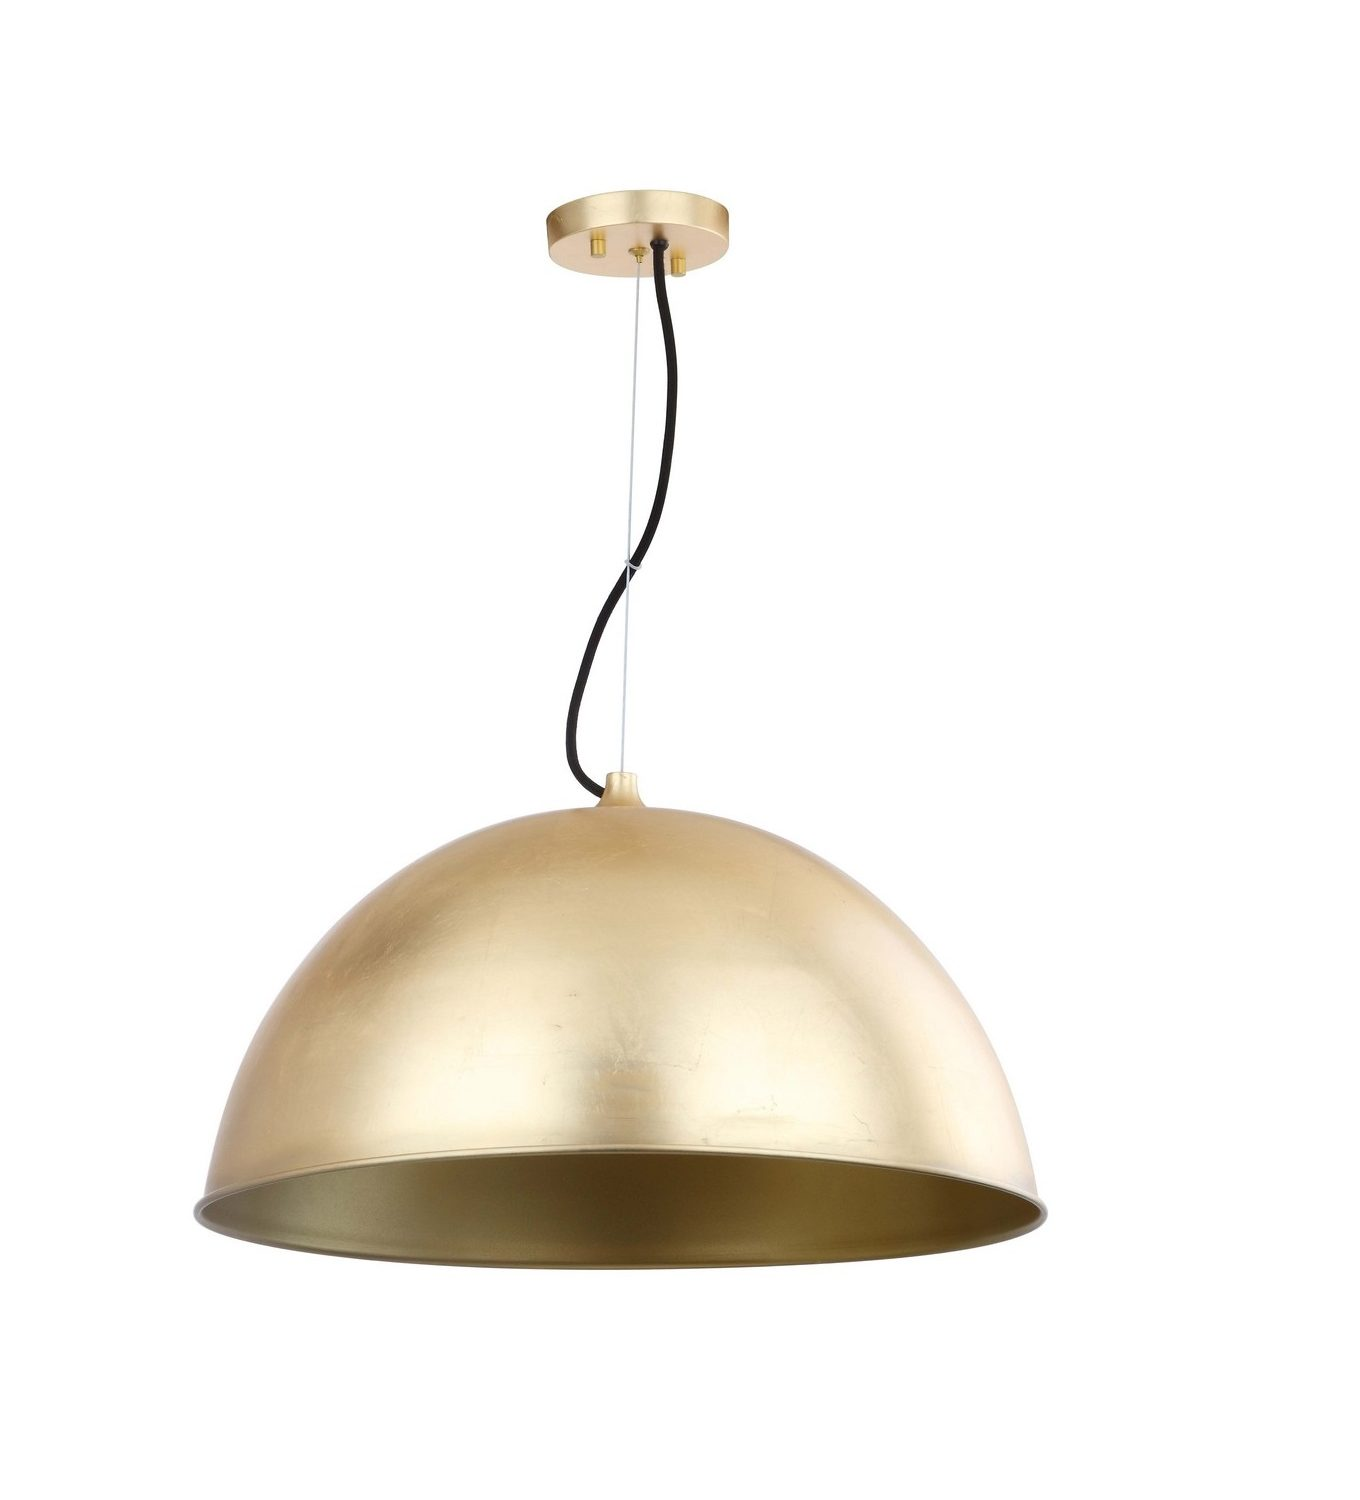 lighting lamp nyta tilt b architonic en product brass pendant general from by